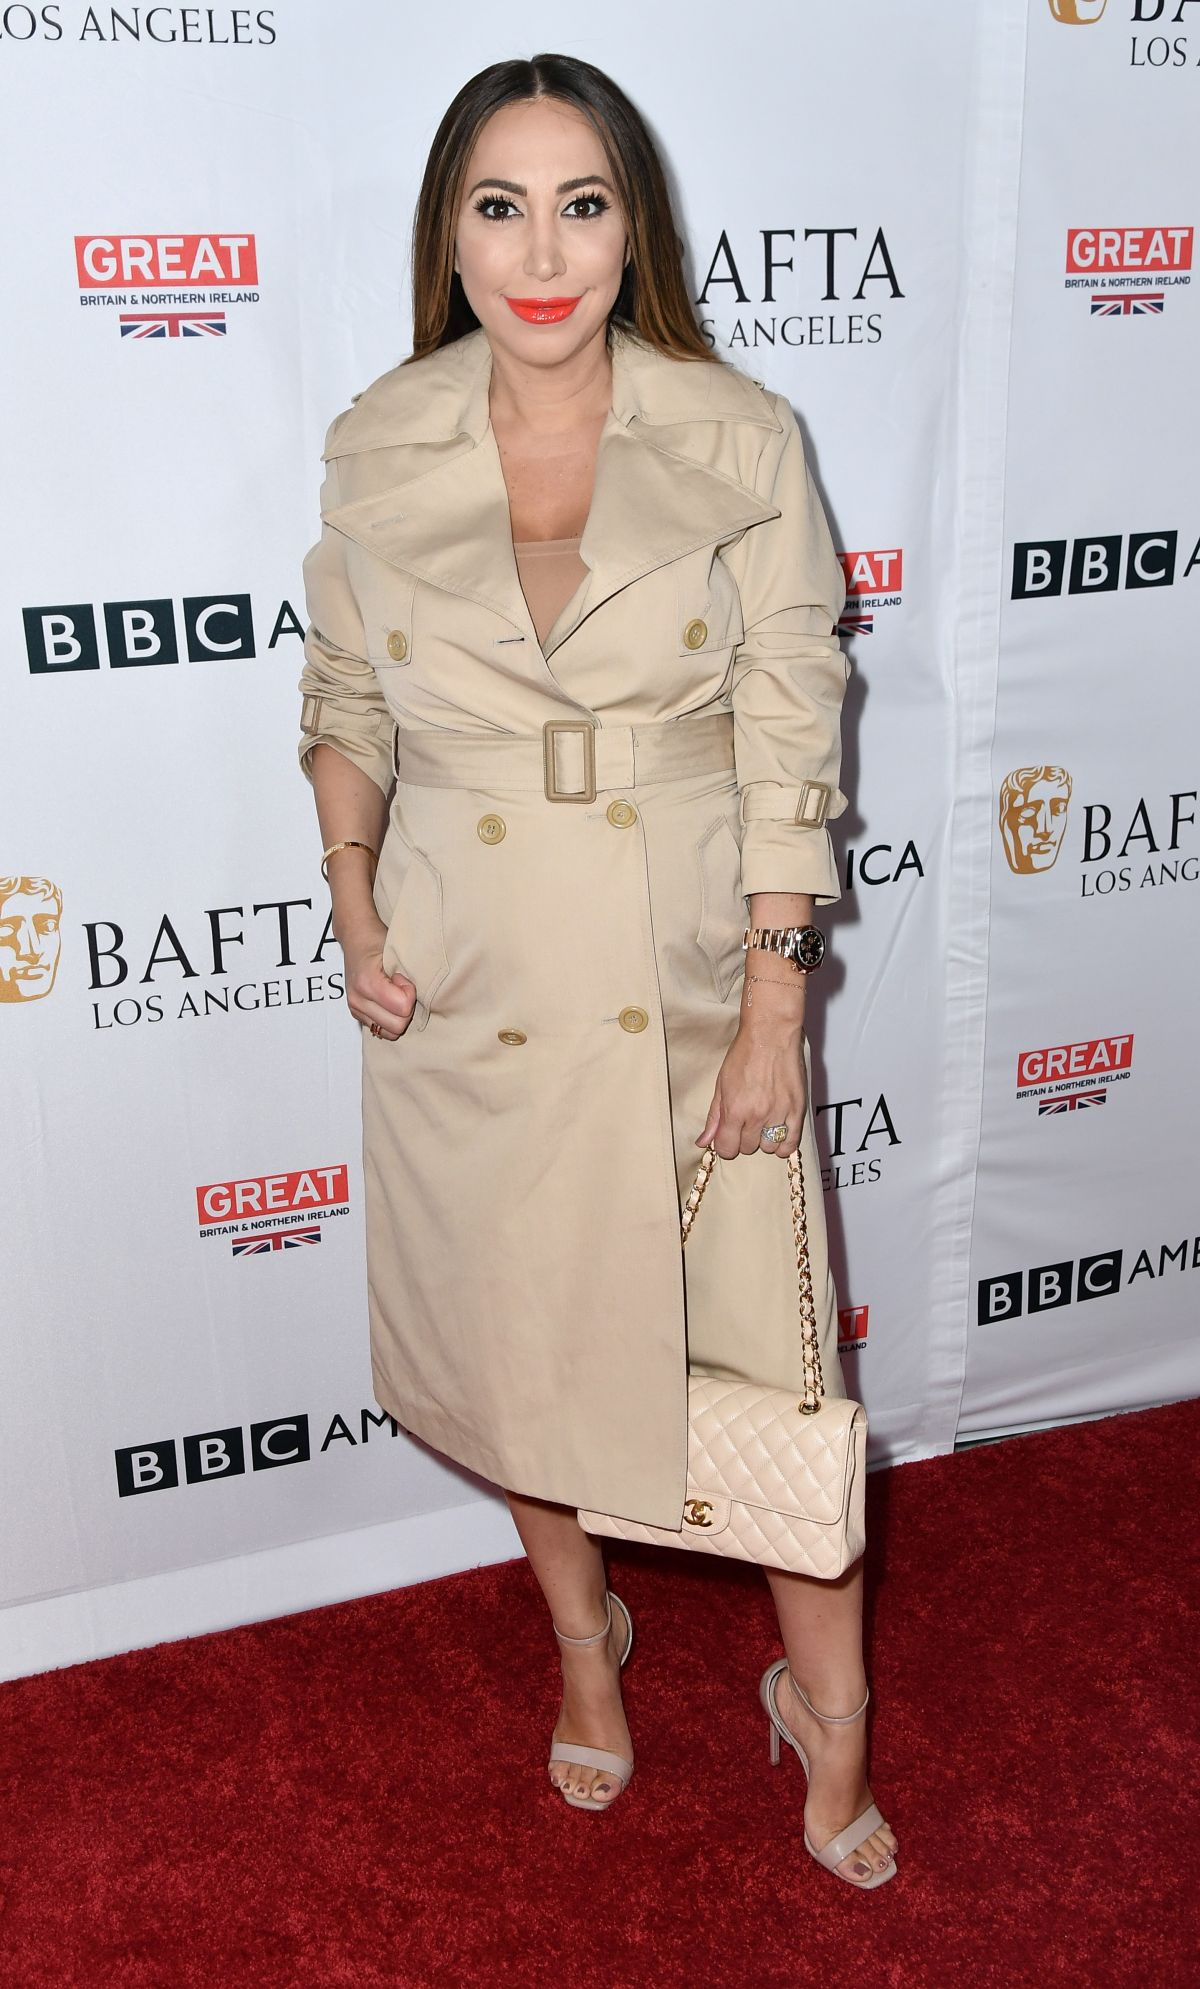 DIANA MADISON at BBC America Bafta Los Angeles TV Tea Party 09/16/2017